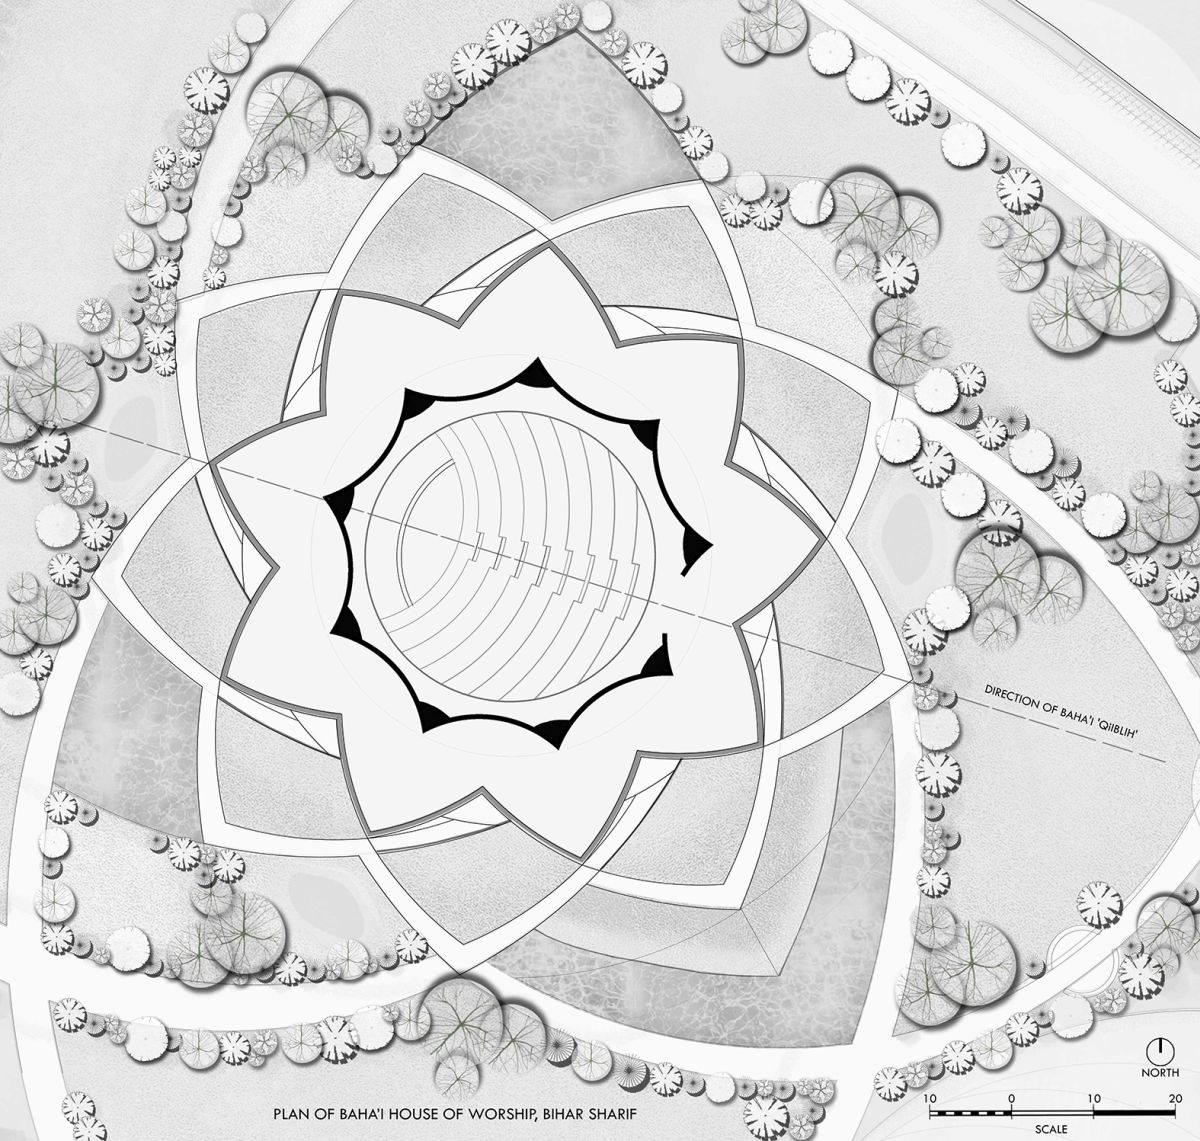 Baha'I Temple at Bihar, an award winning proposal by Spacematters 12